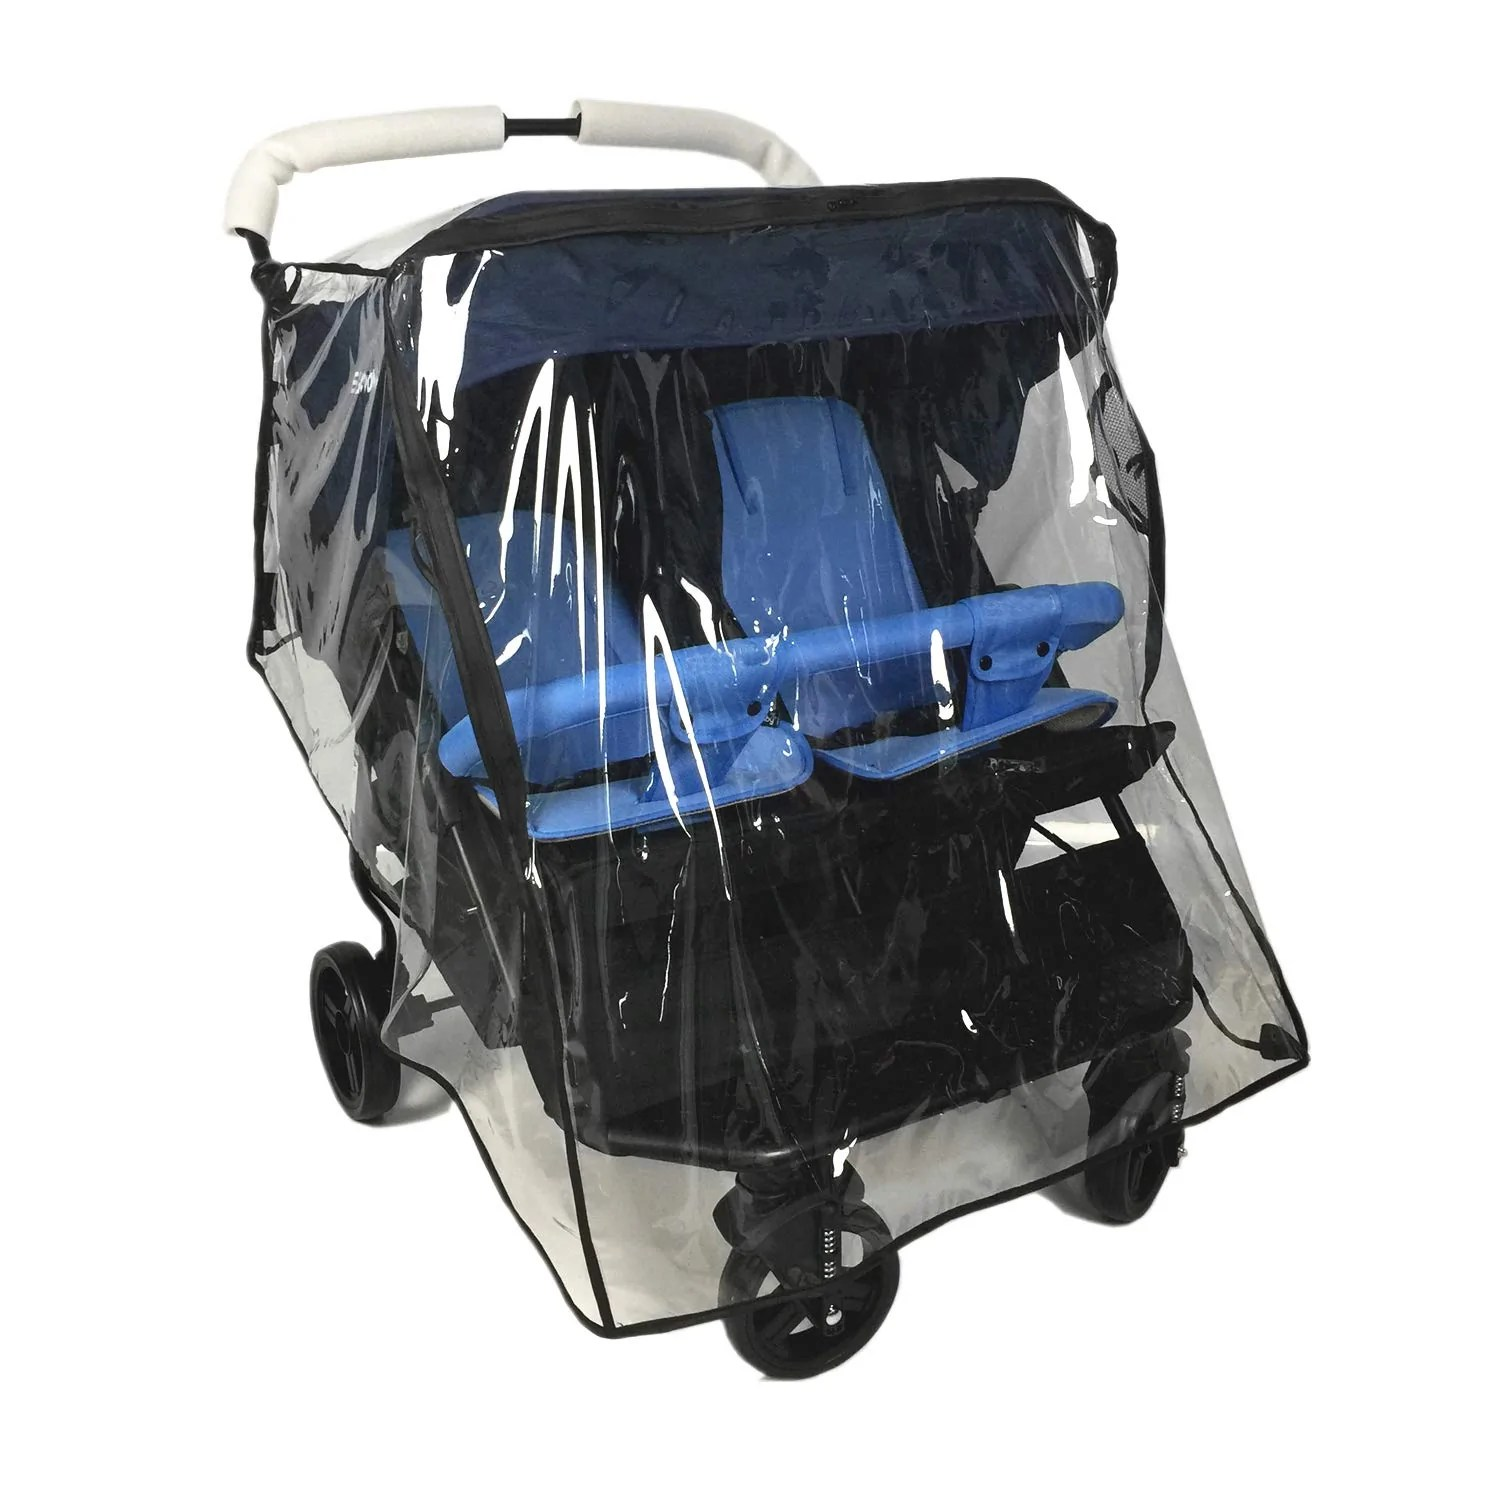 Double Stroller Rain Cover Weather Shield For Double Stroller Universal Side By Side Baby Stroller Rain Cover